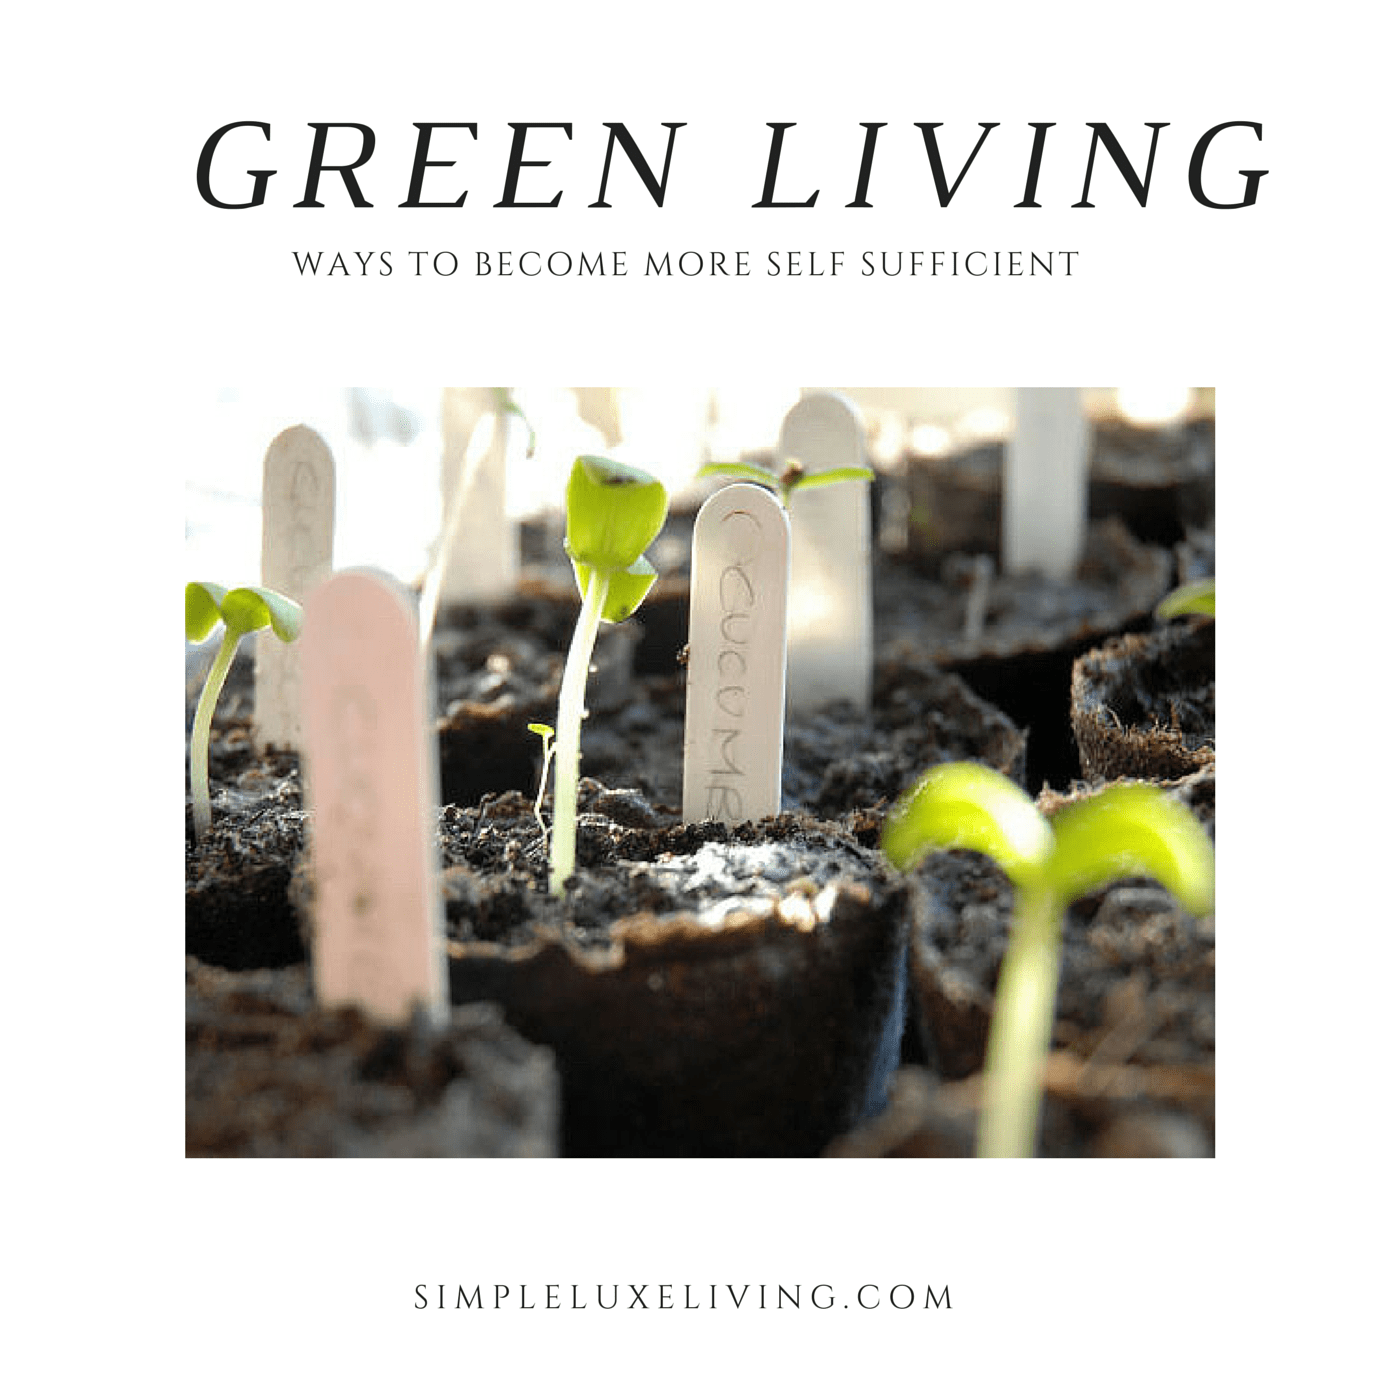 13 Ways To Live More Green